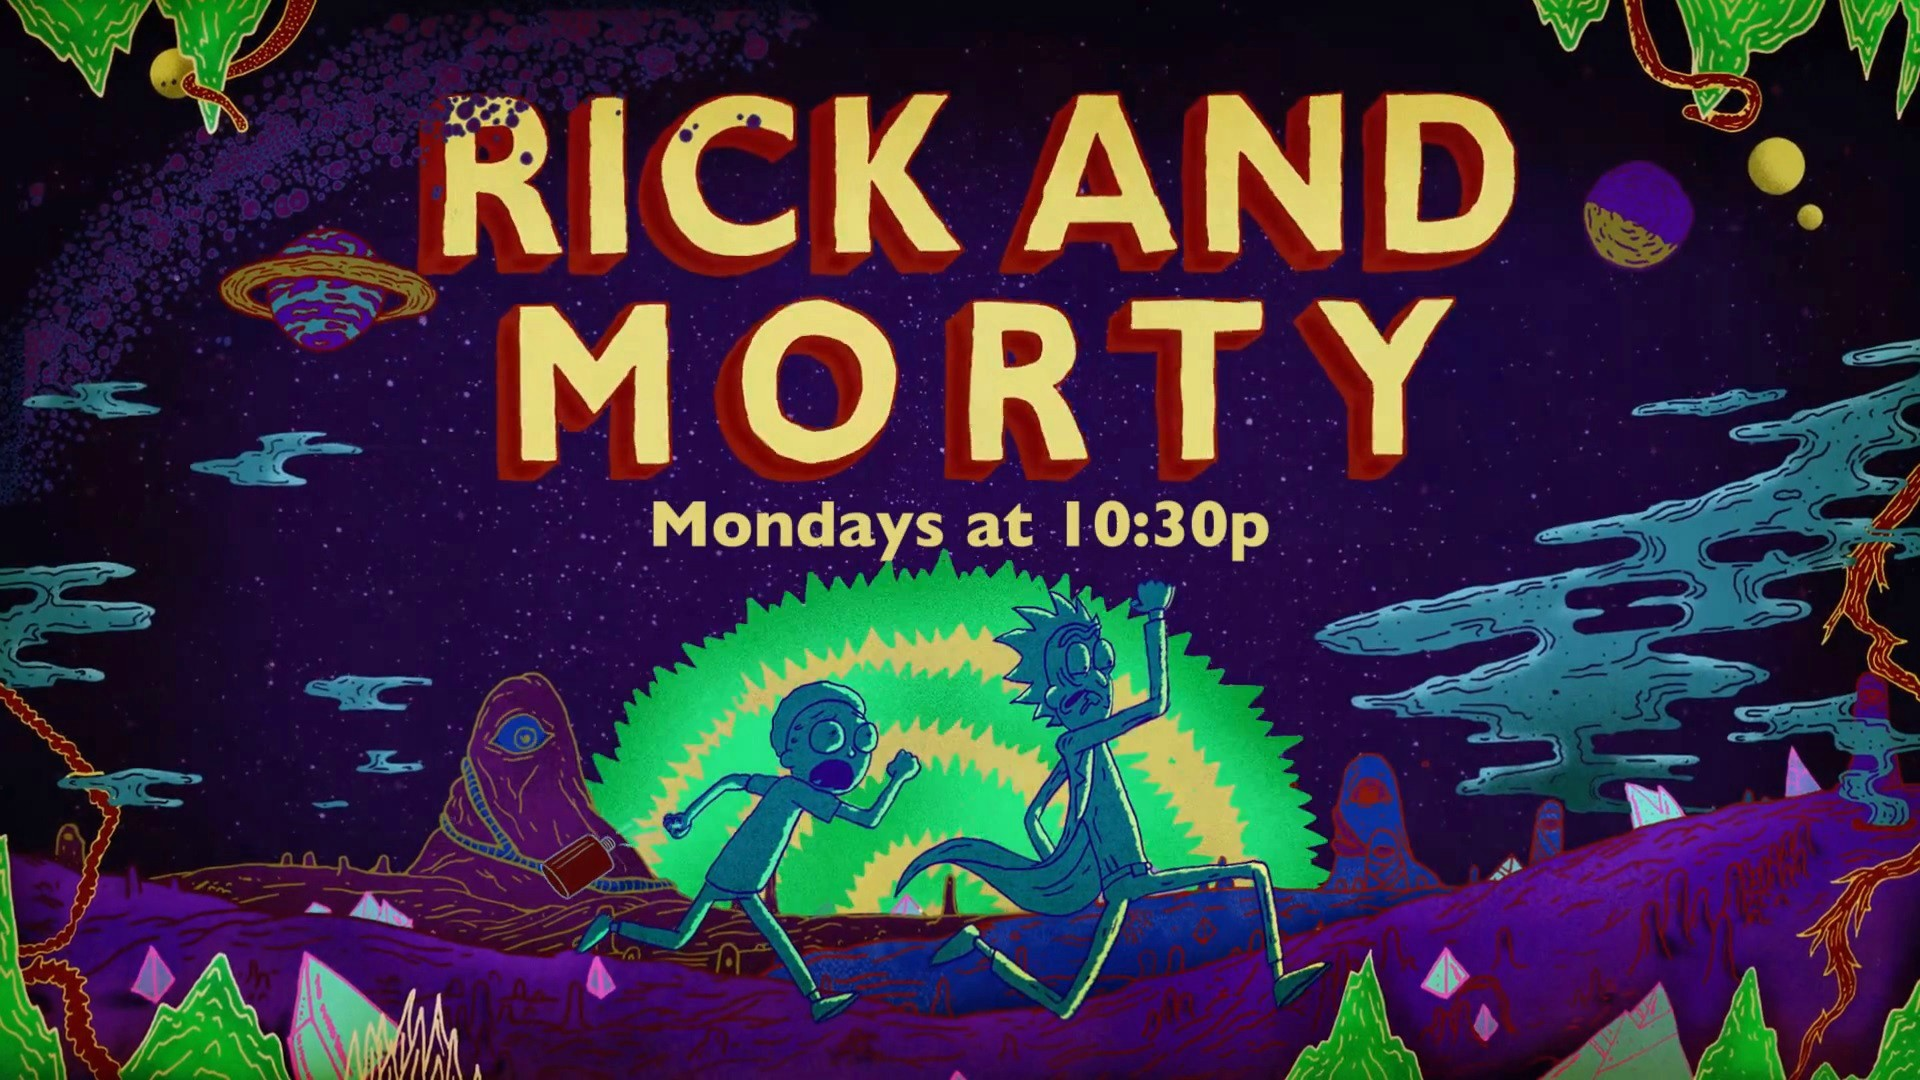 Rick And Morty Computer Wallpapers, Desktop Backgrounds 1920x1080